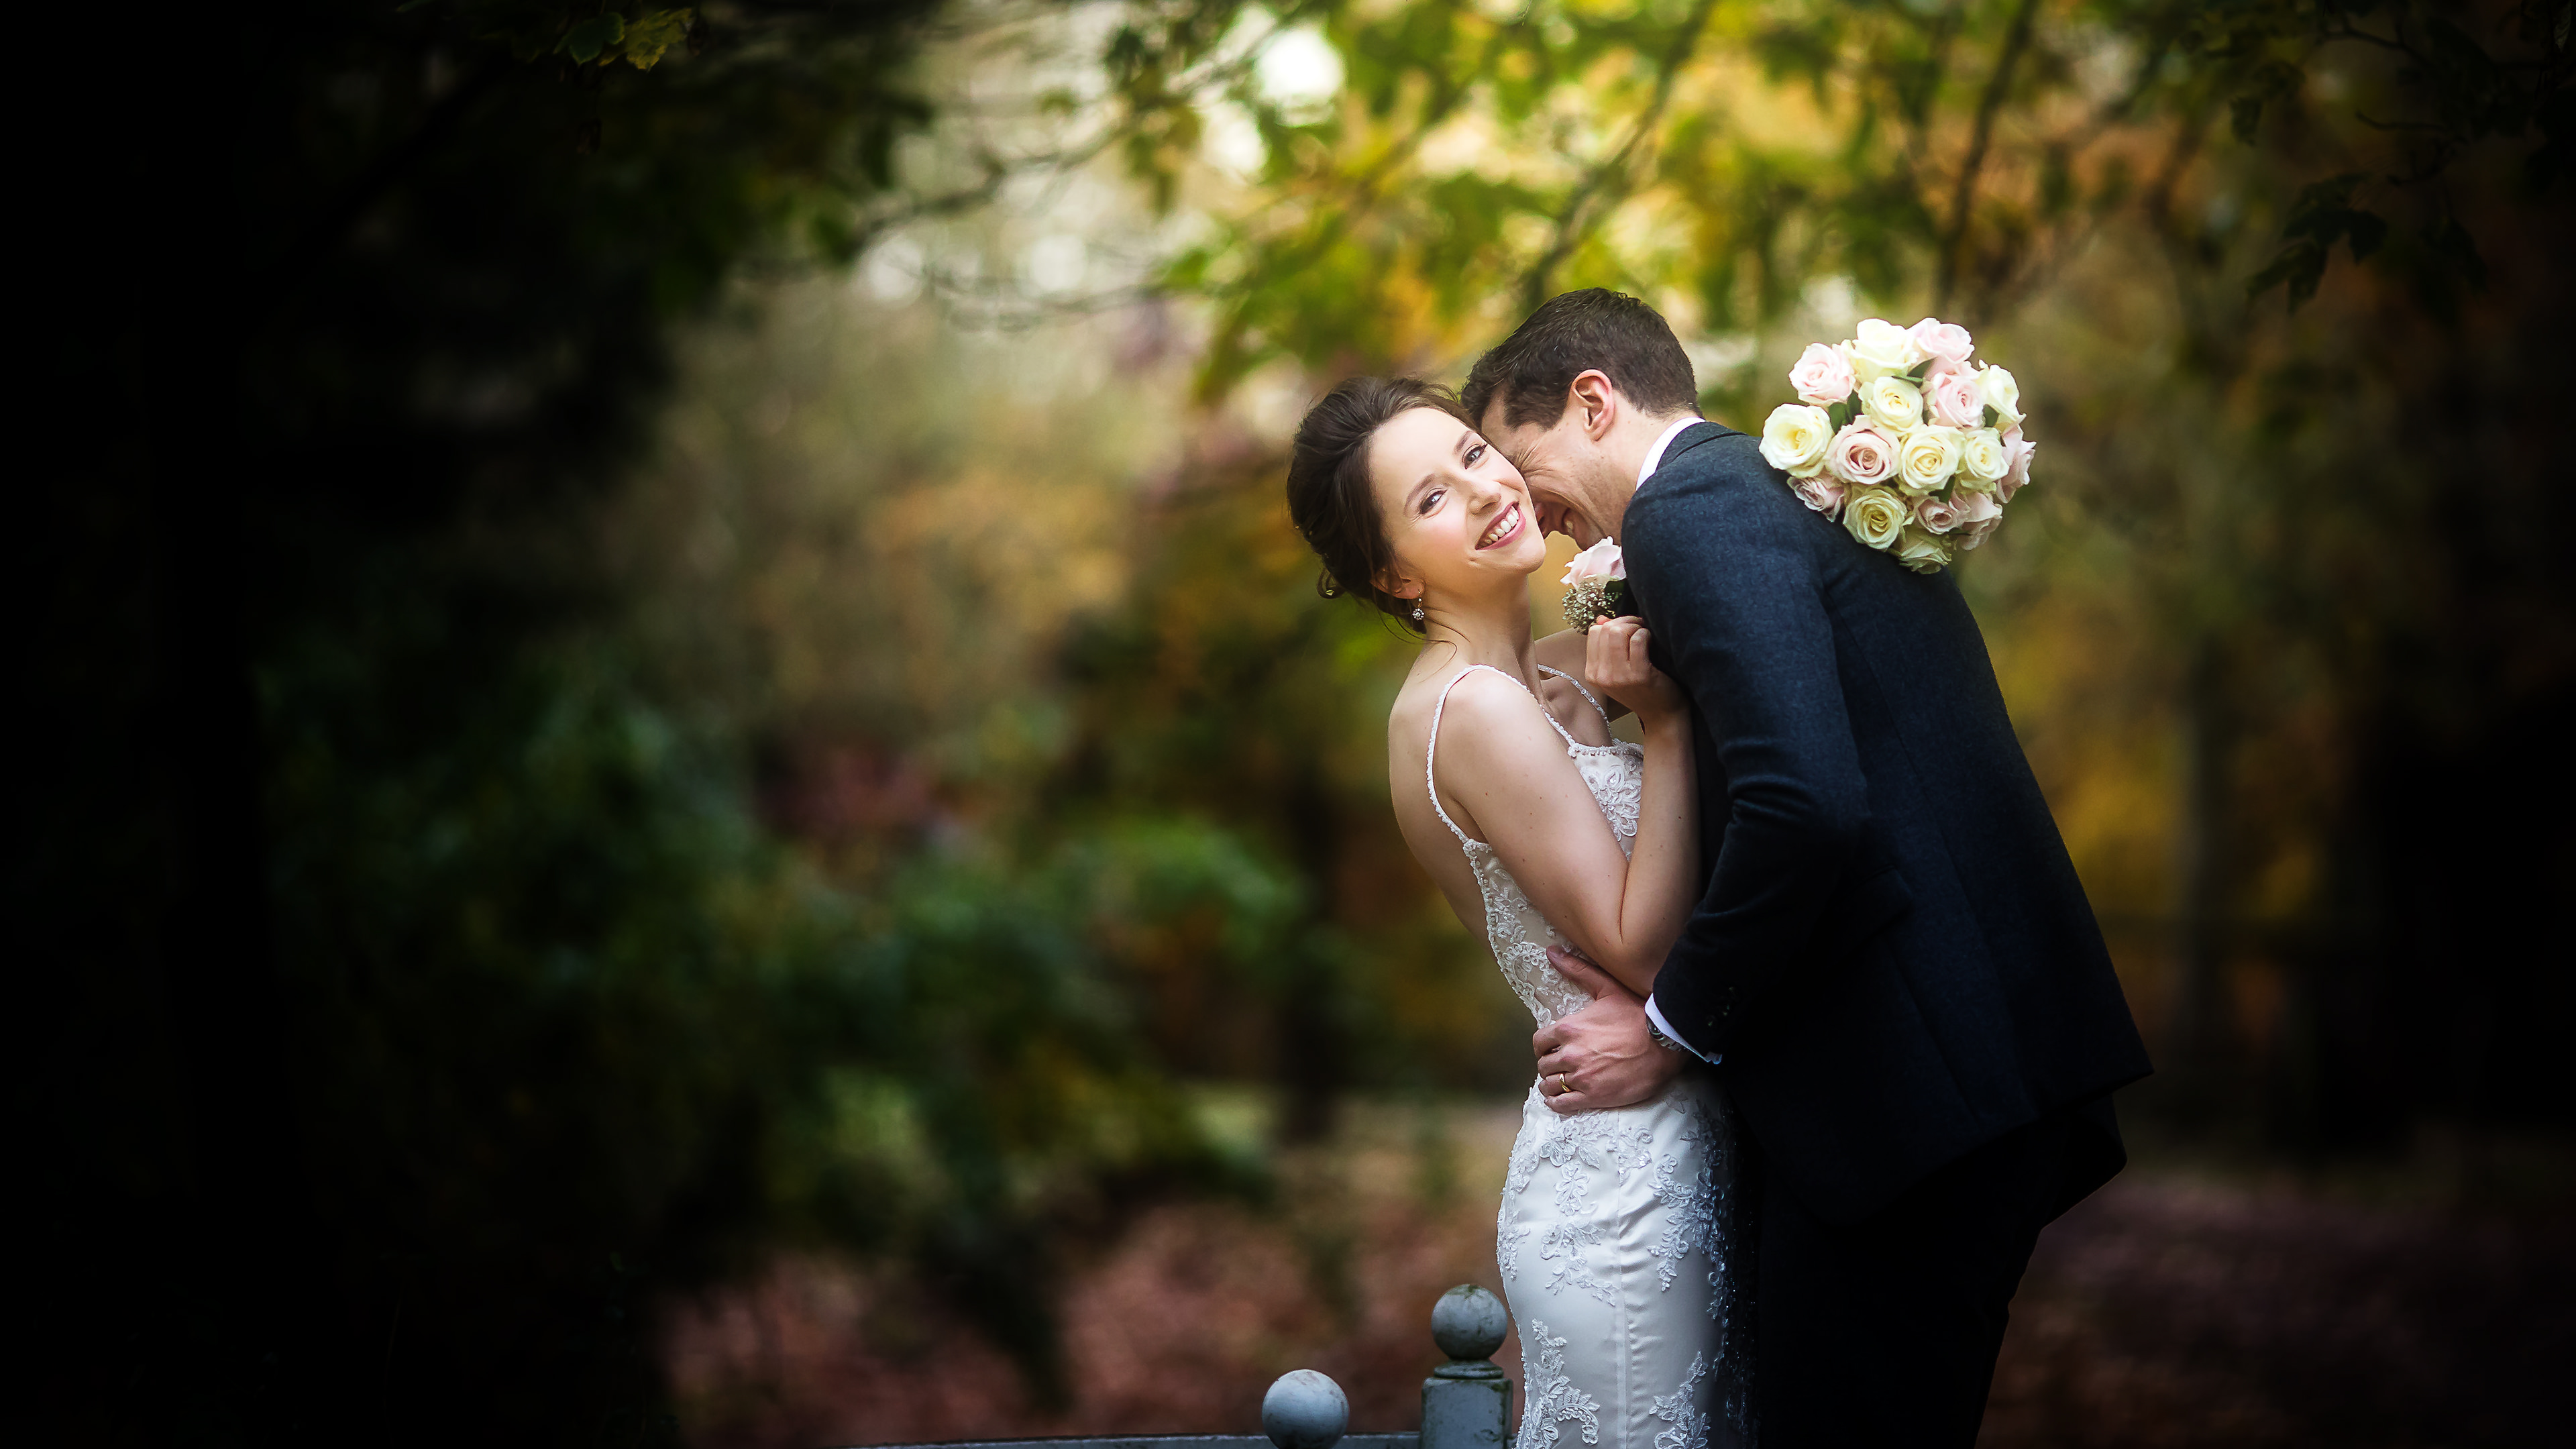 How to Choose a Wedding Photographer - 10 Tips For Selecting ...